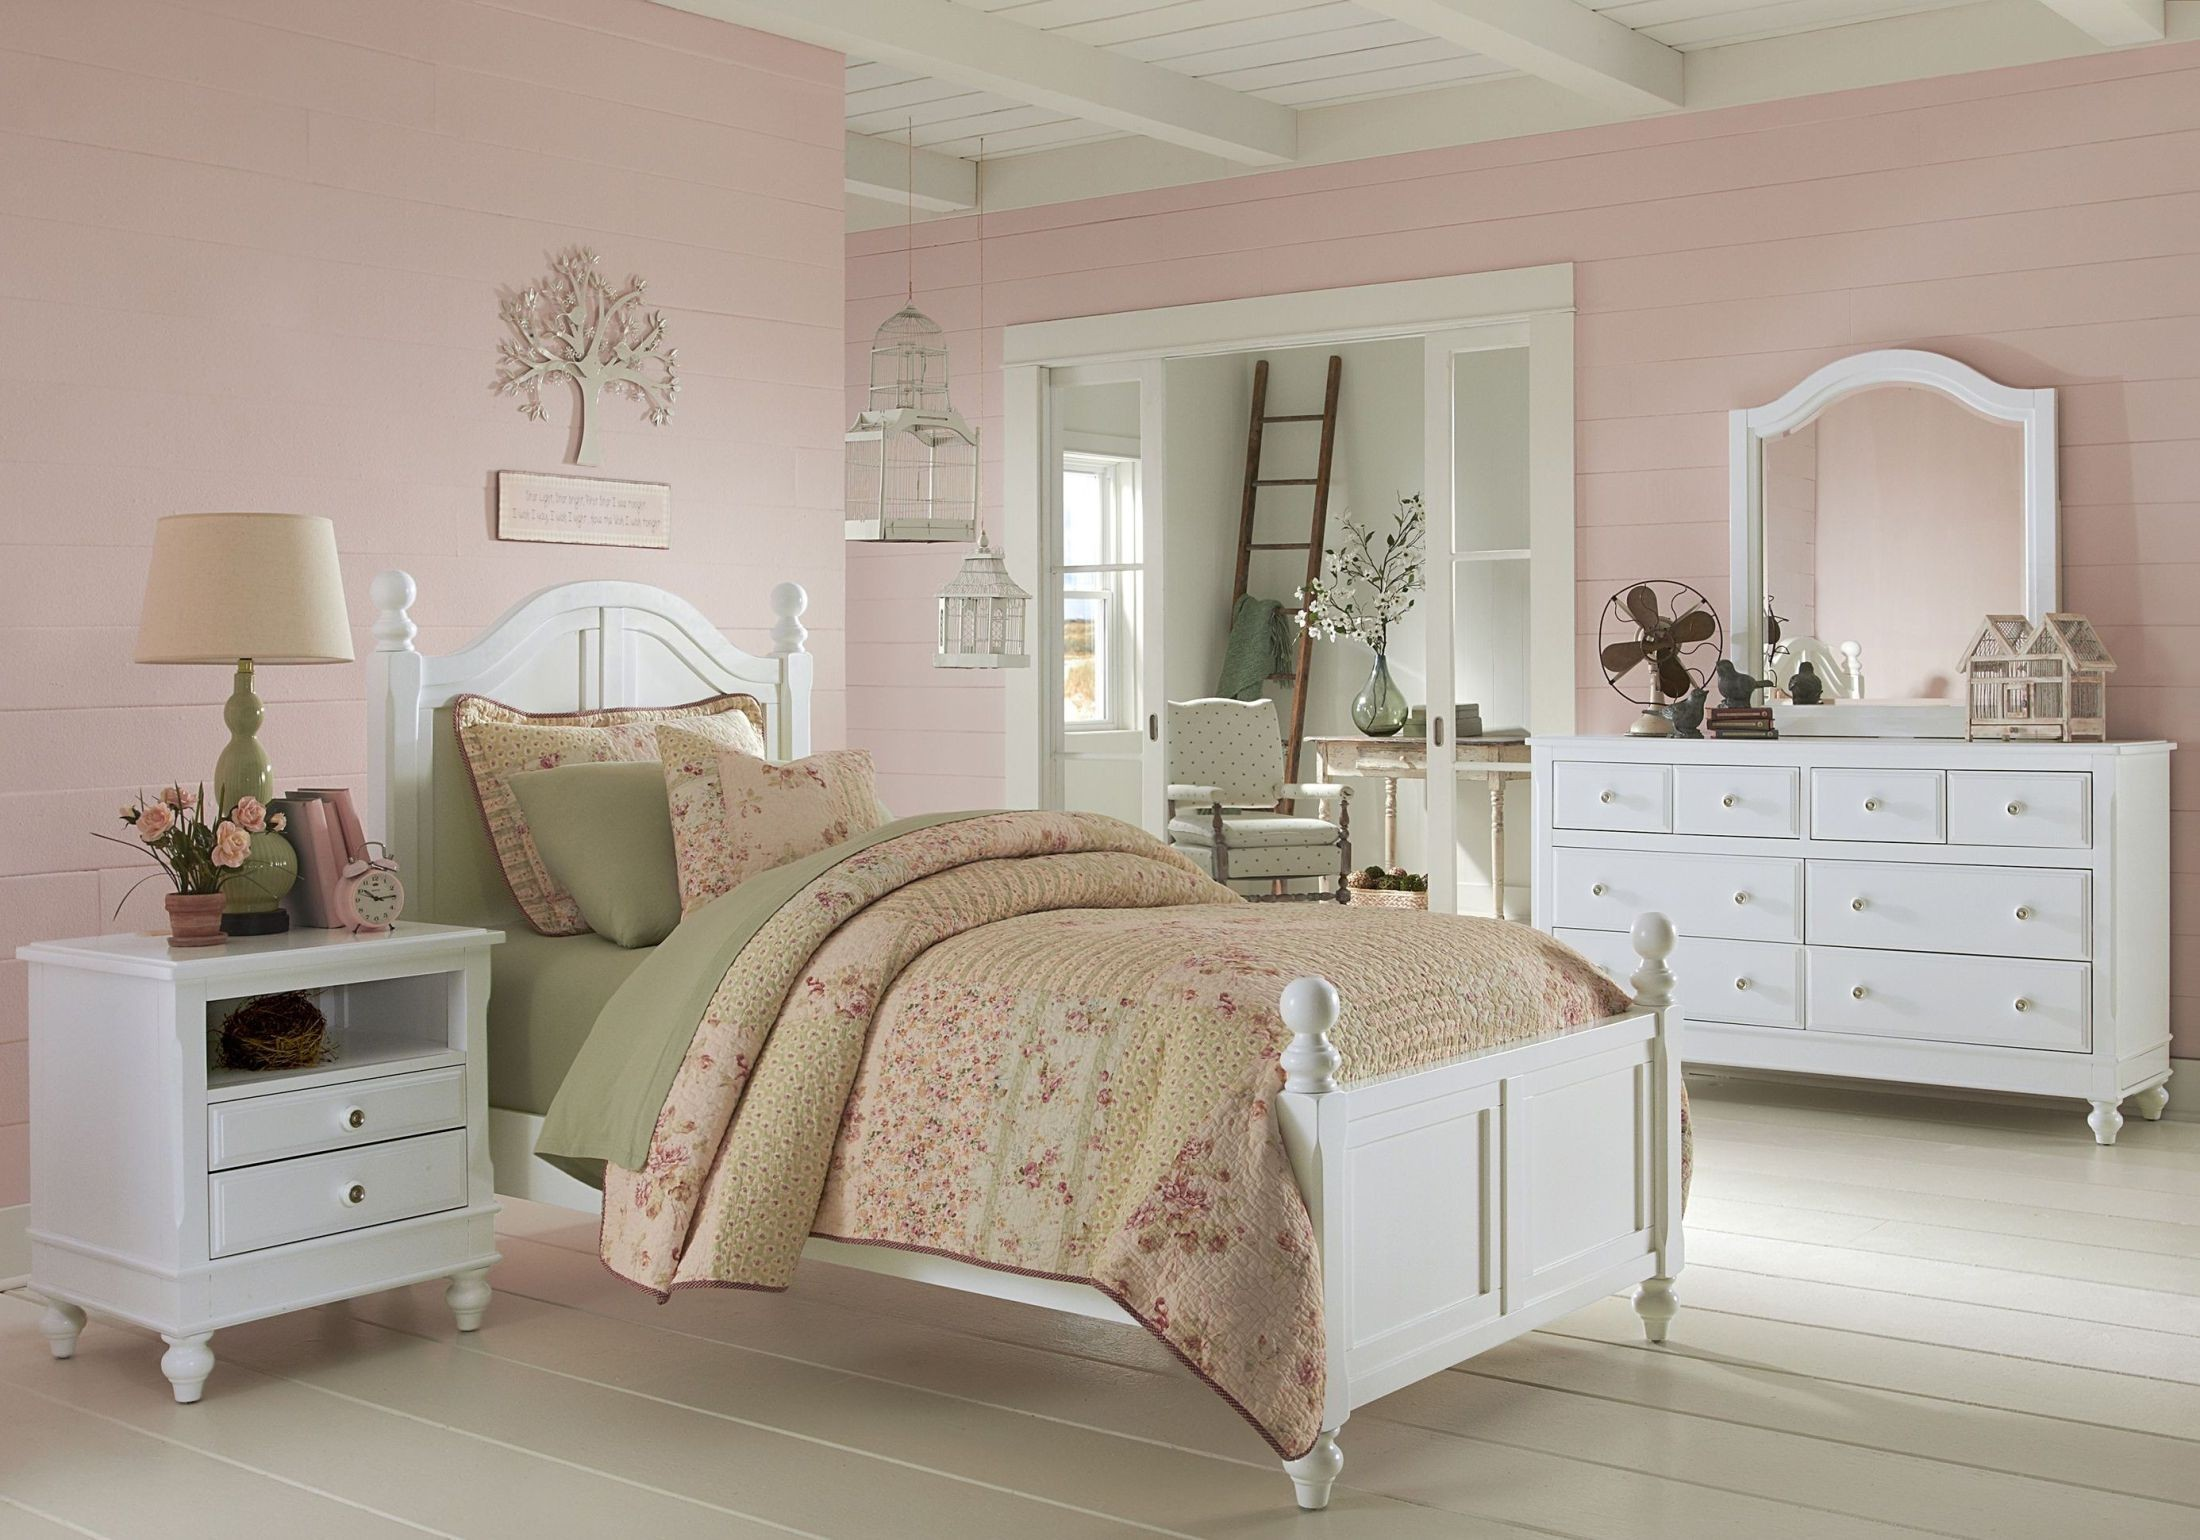 Lake house white payton youth panel bedroom set from ne kids coleman furniture Lake home bedroom furniture